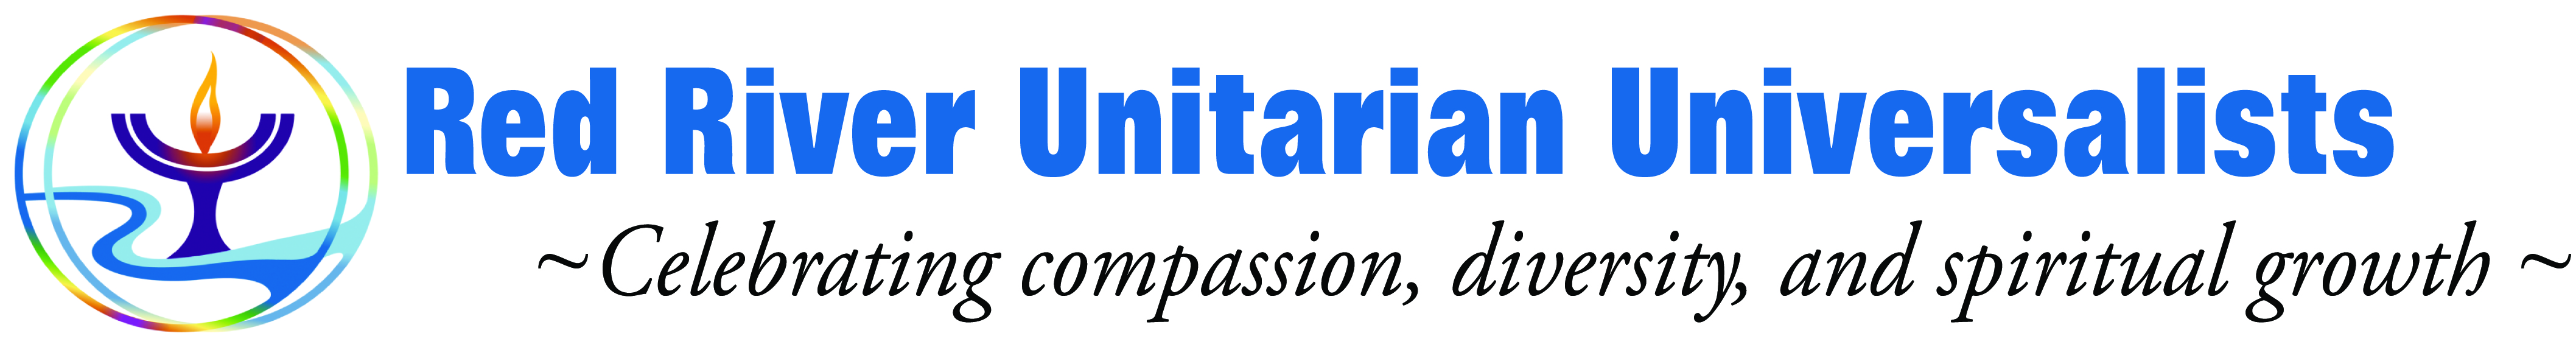 Red River Unitarian Universalists Logo